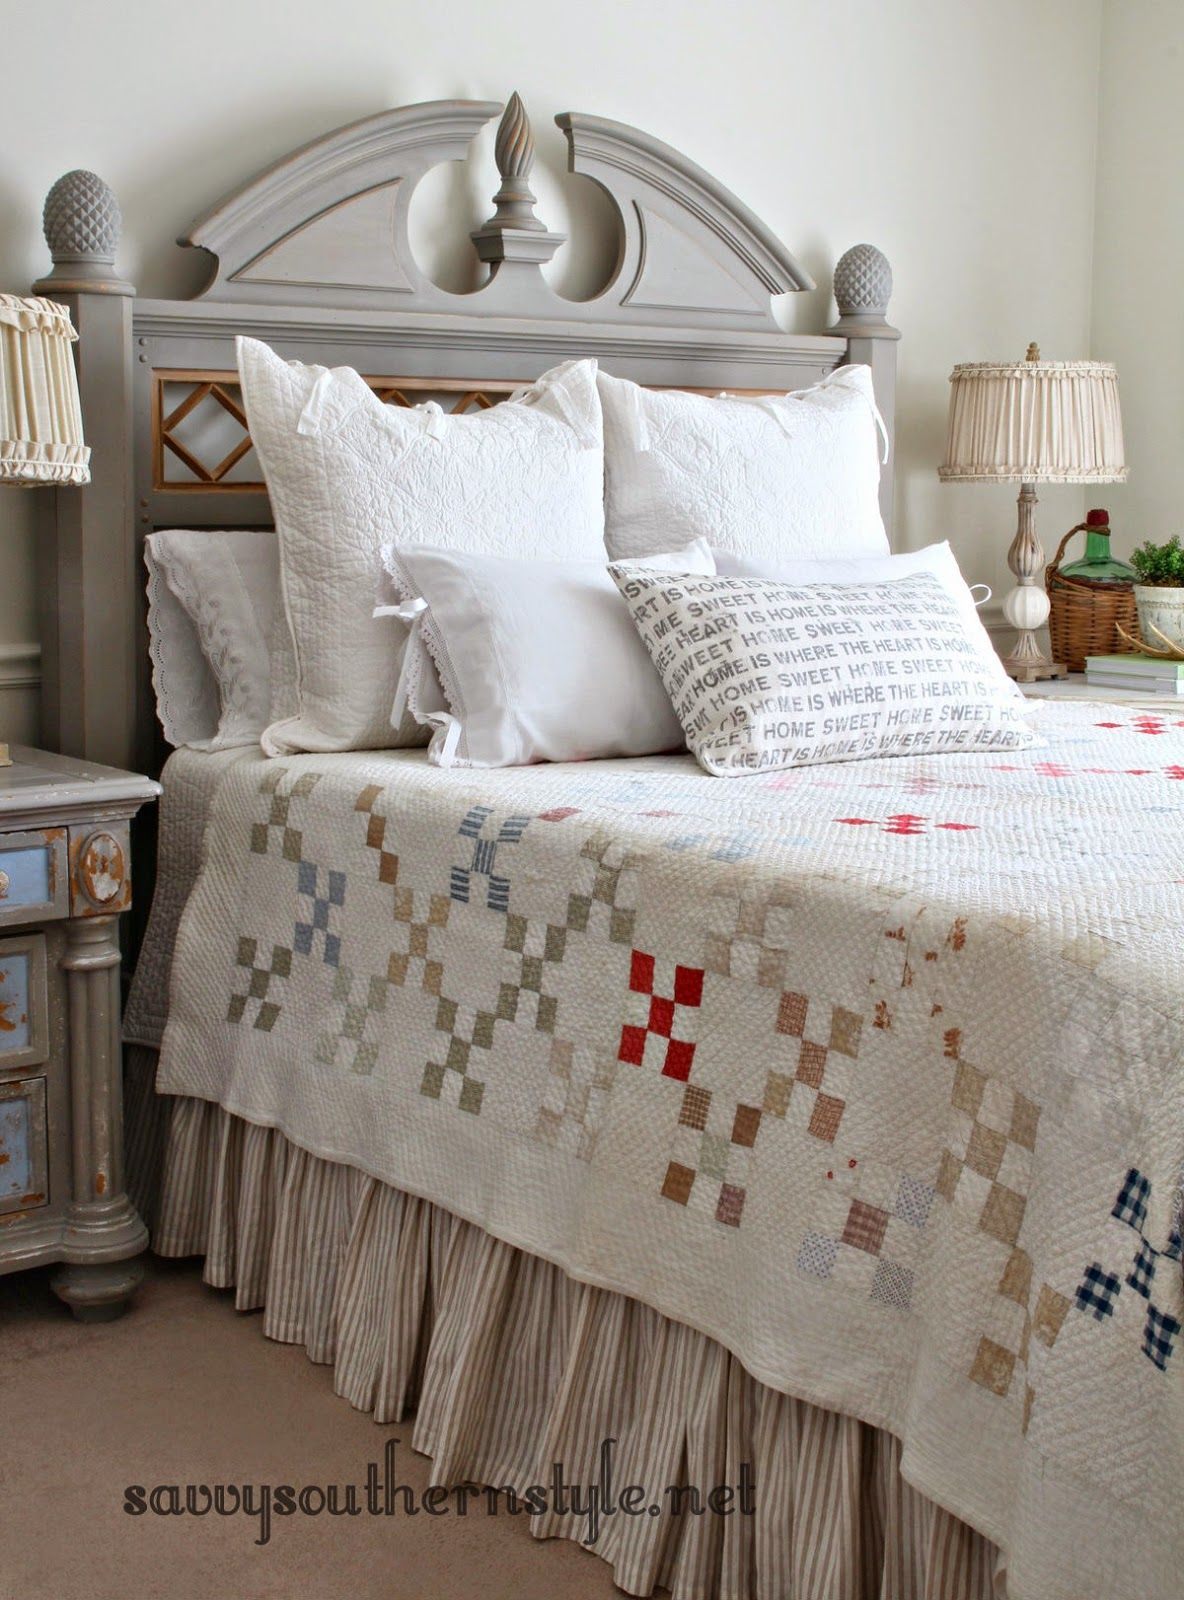 Old Bed New Look French country rug, Old beds, Country decor